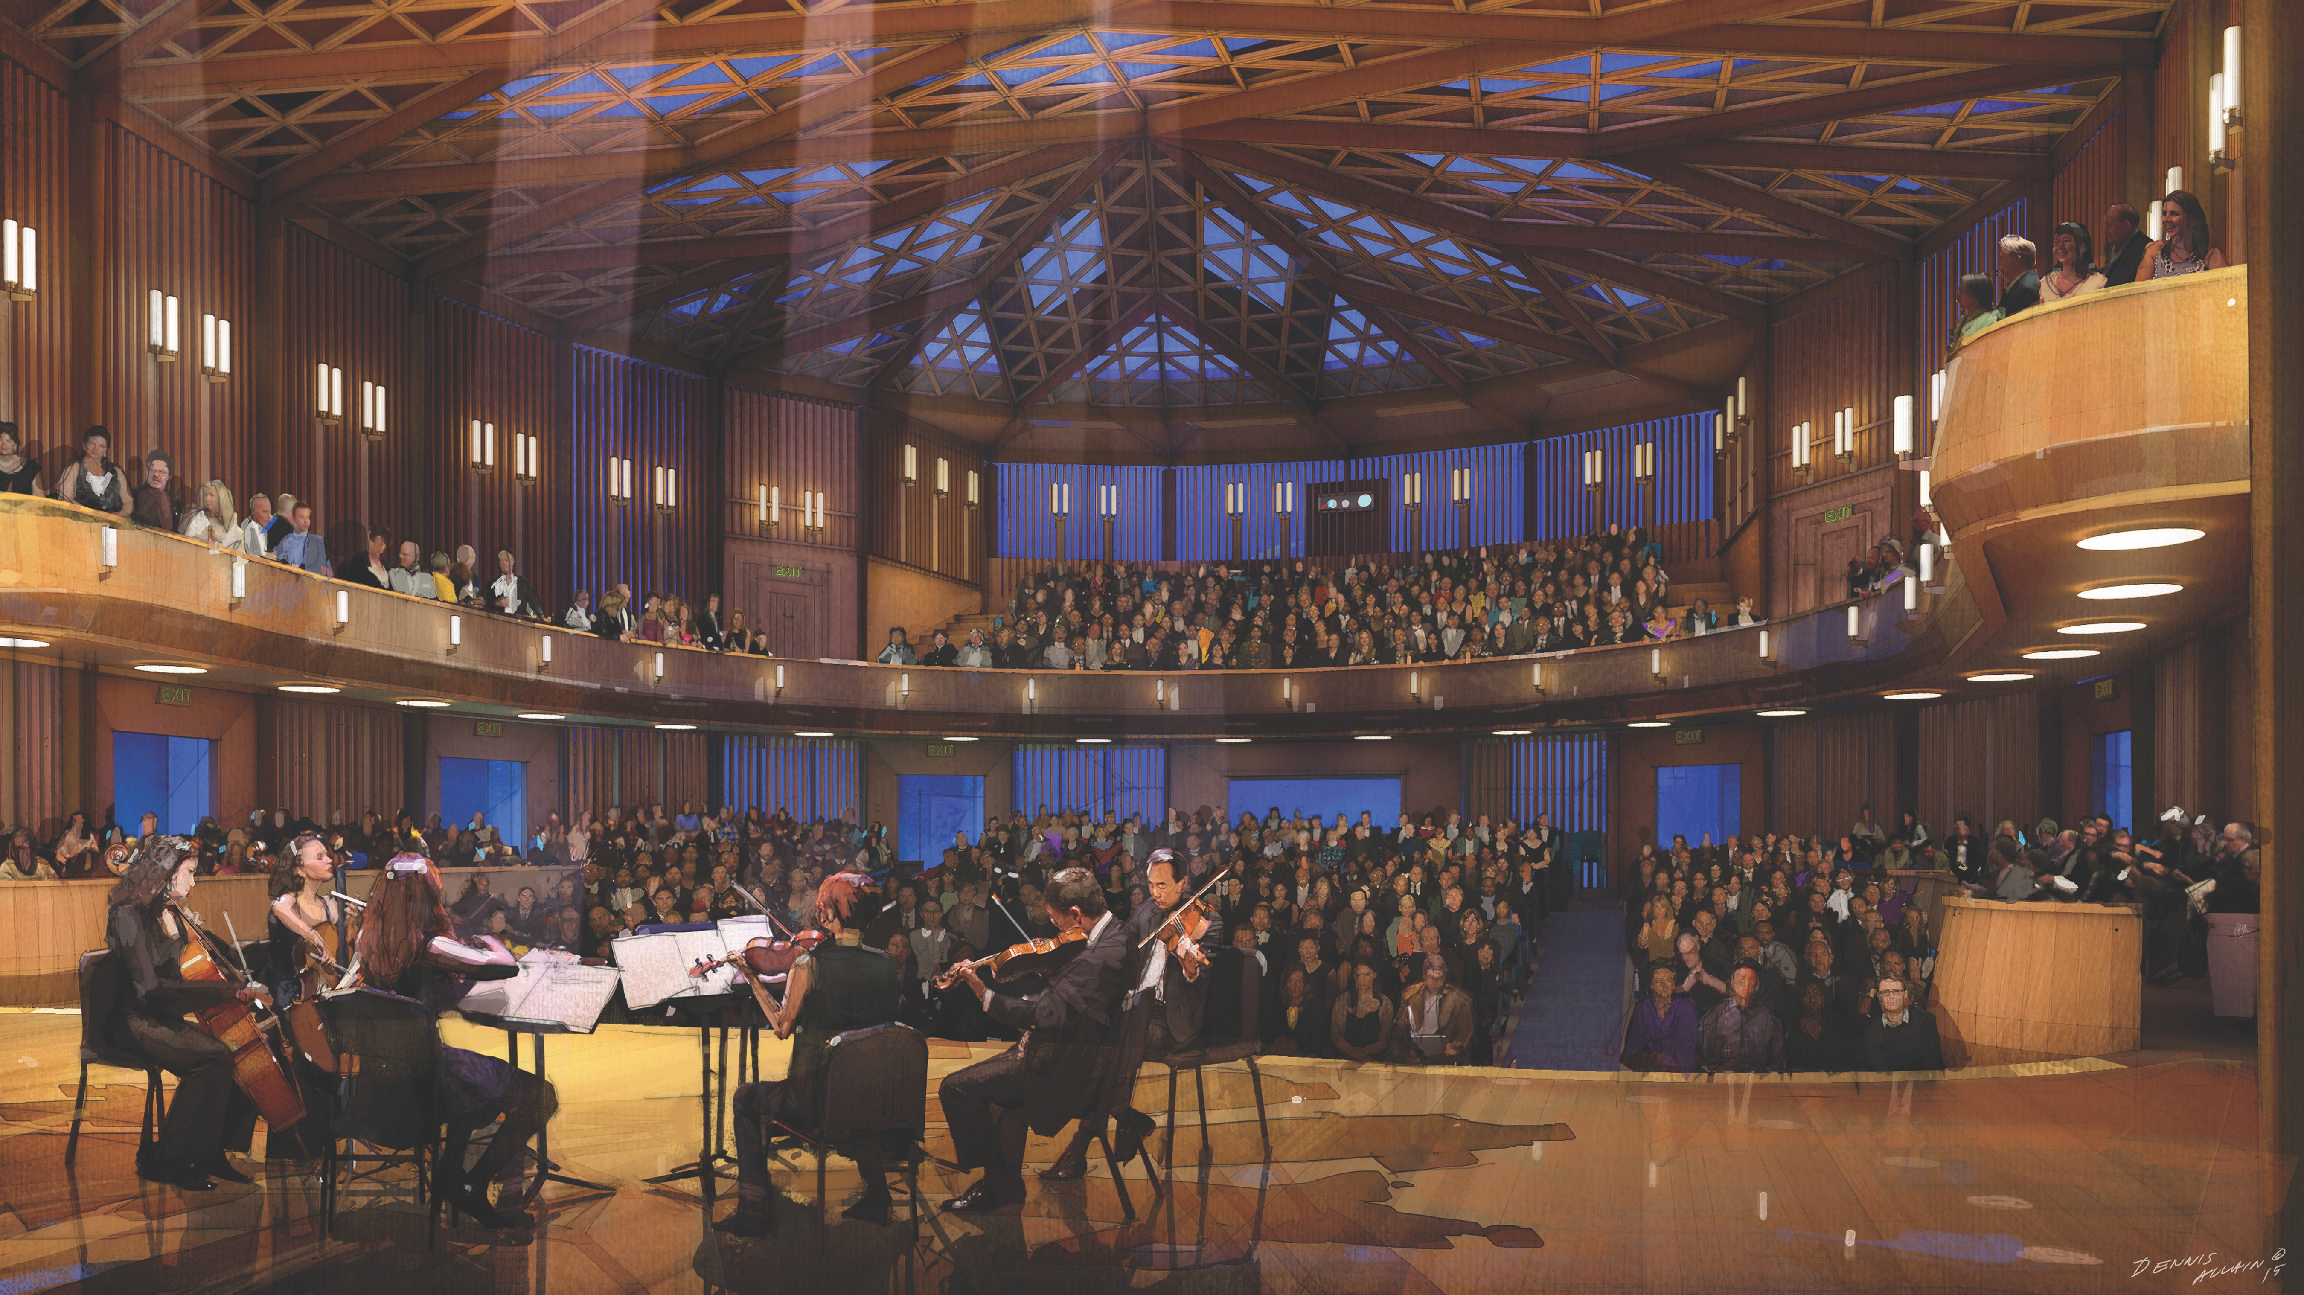 The Conrad Prebys Performing Arts Center just opened April 2019